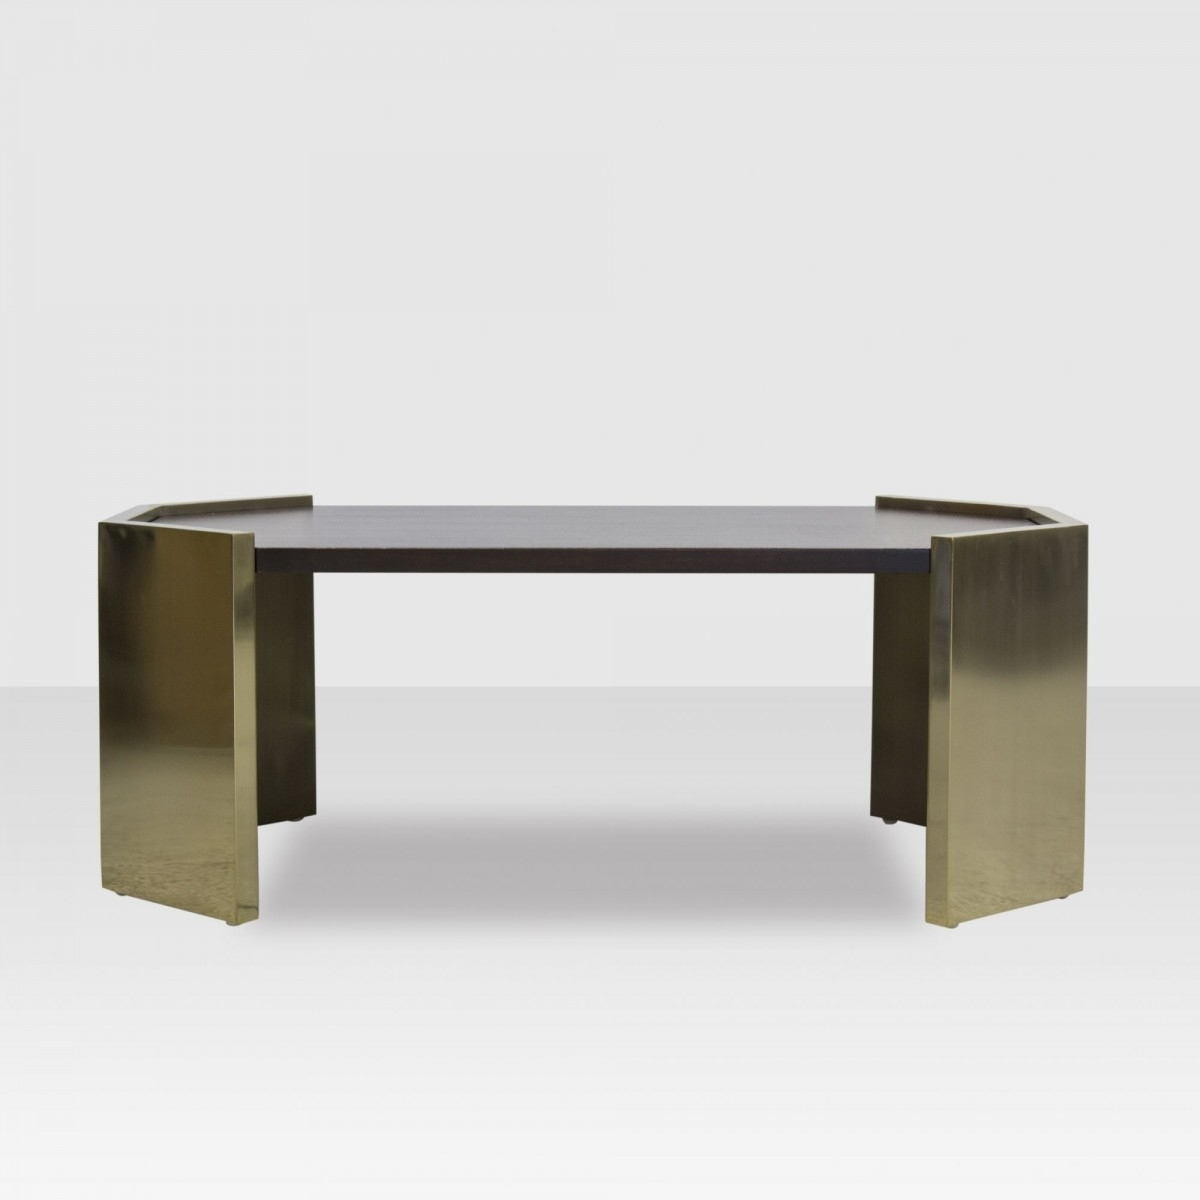 Element Coffee Table - Elte pertaining to Element Coffee Tables (Image 17 of 30)